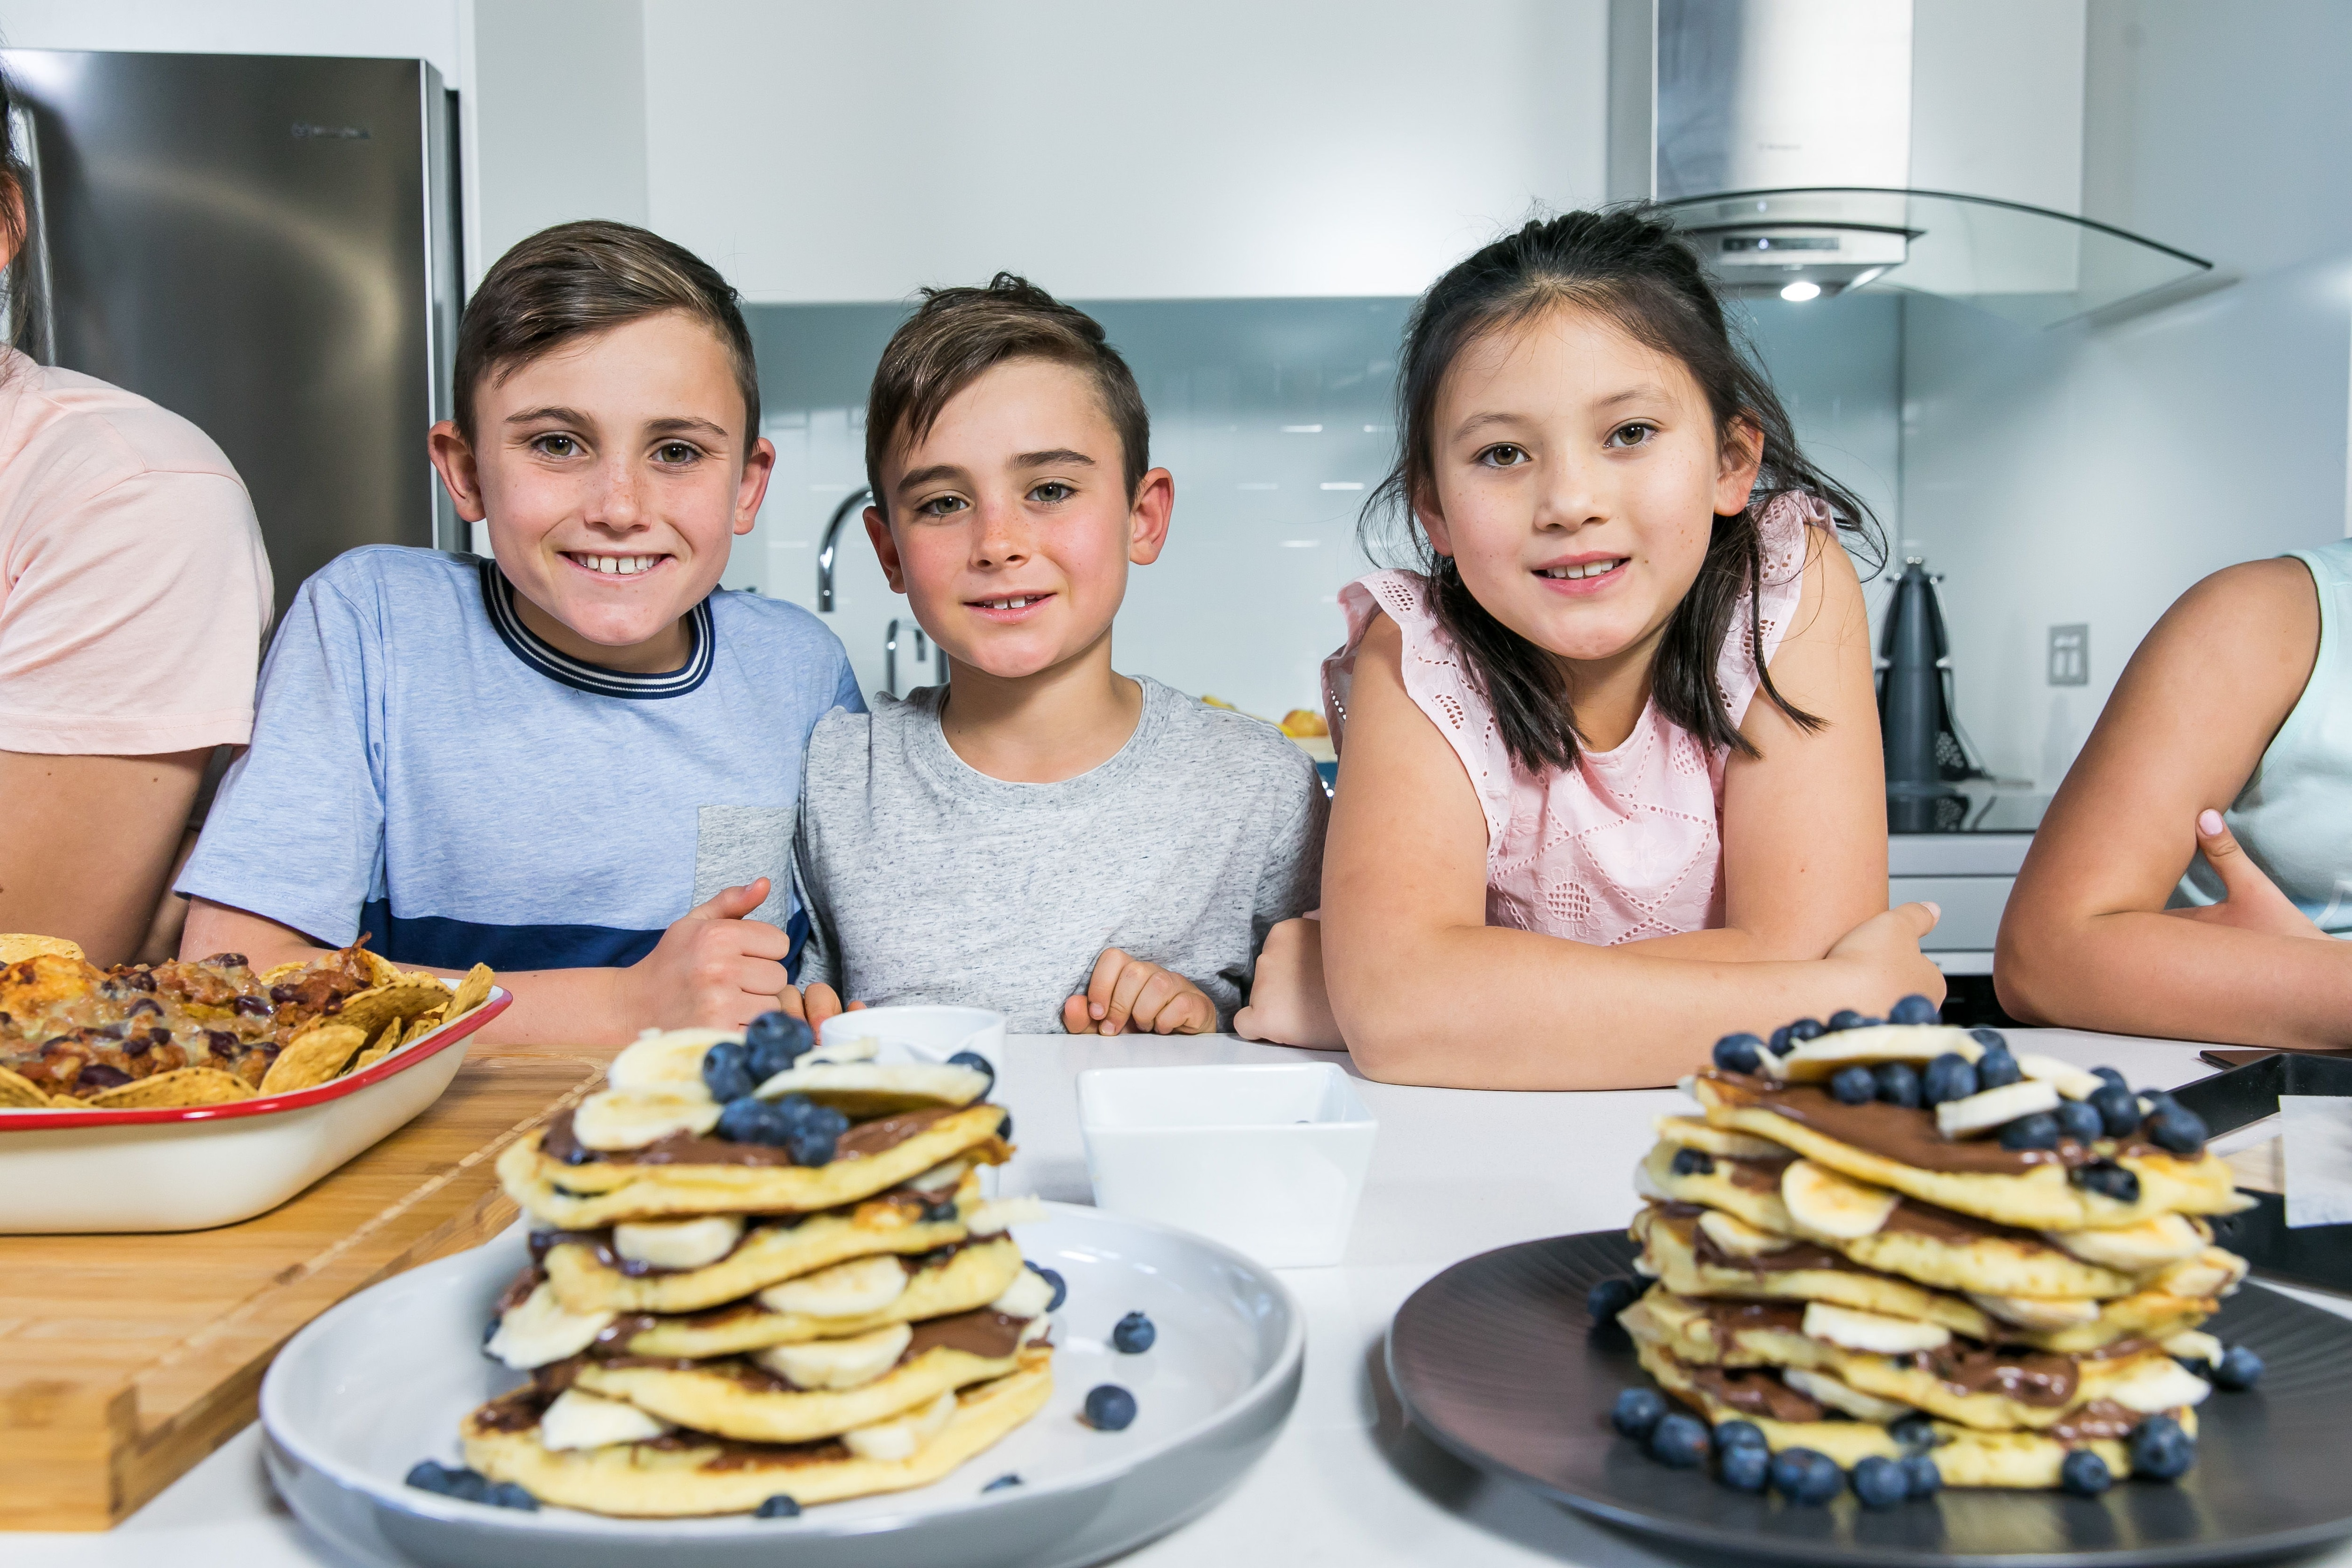 Gooey Chocolate Pancakes Recipe